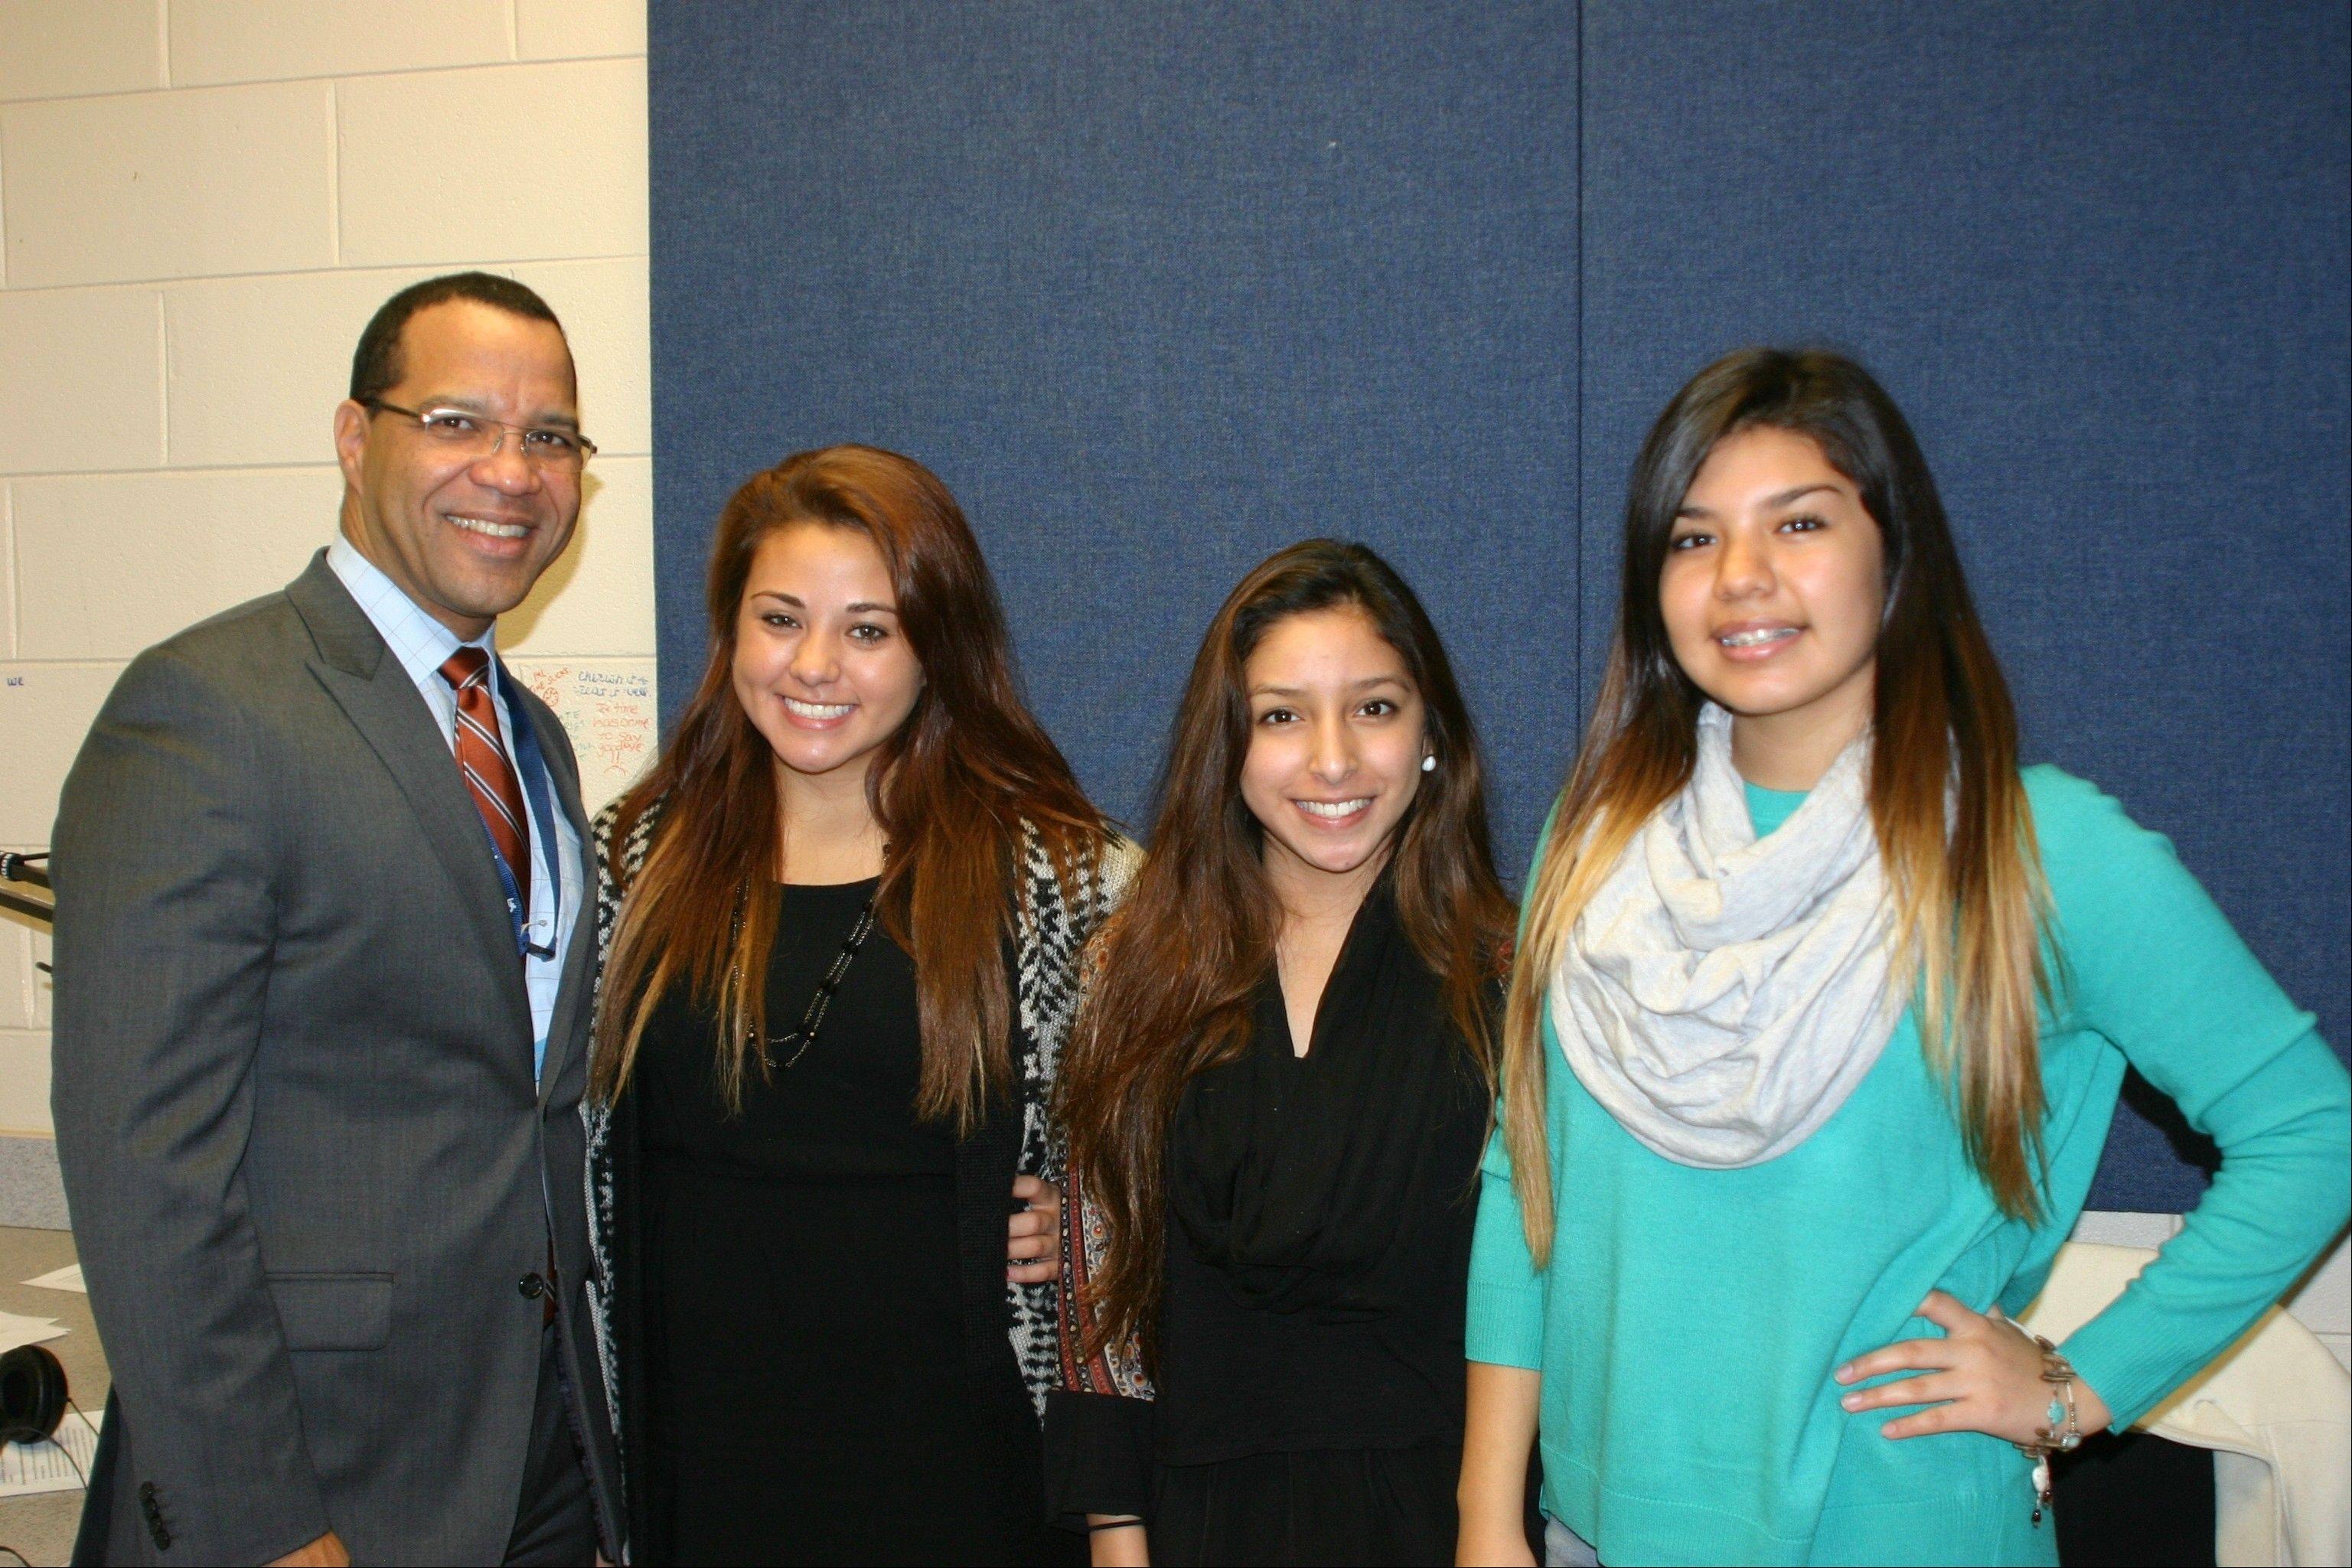 BEACON Academy seniors Paula Lopez, Lilia Vazquez and Tanya Ocampo interview U-46 Superintendent Dr. Jos� Torres in Spanish for the station's relaunch show on WEPS 88.9 FM. Pictured, from left, are: Dr. Torres, Paula Lopez, Lilia Vazquez, Tanya Ocampo.